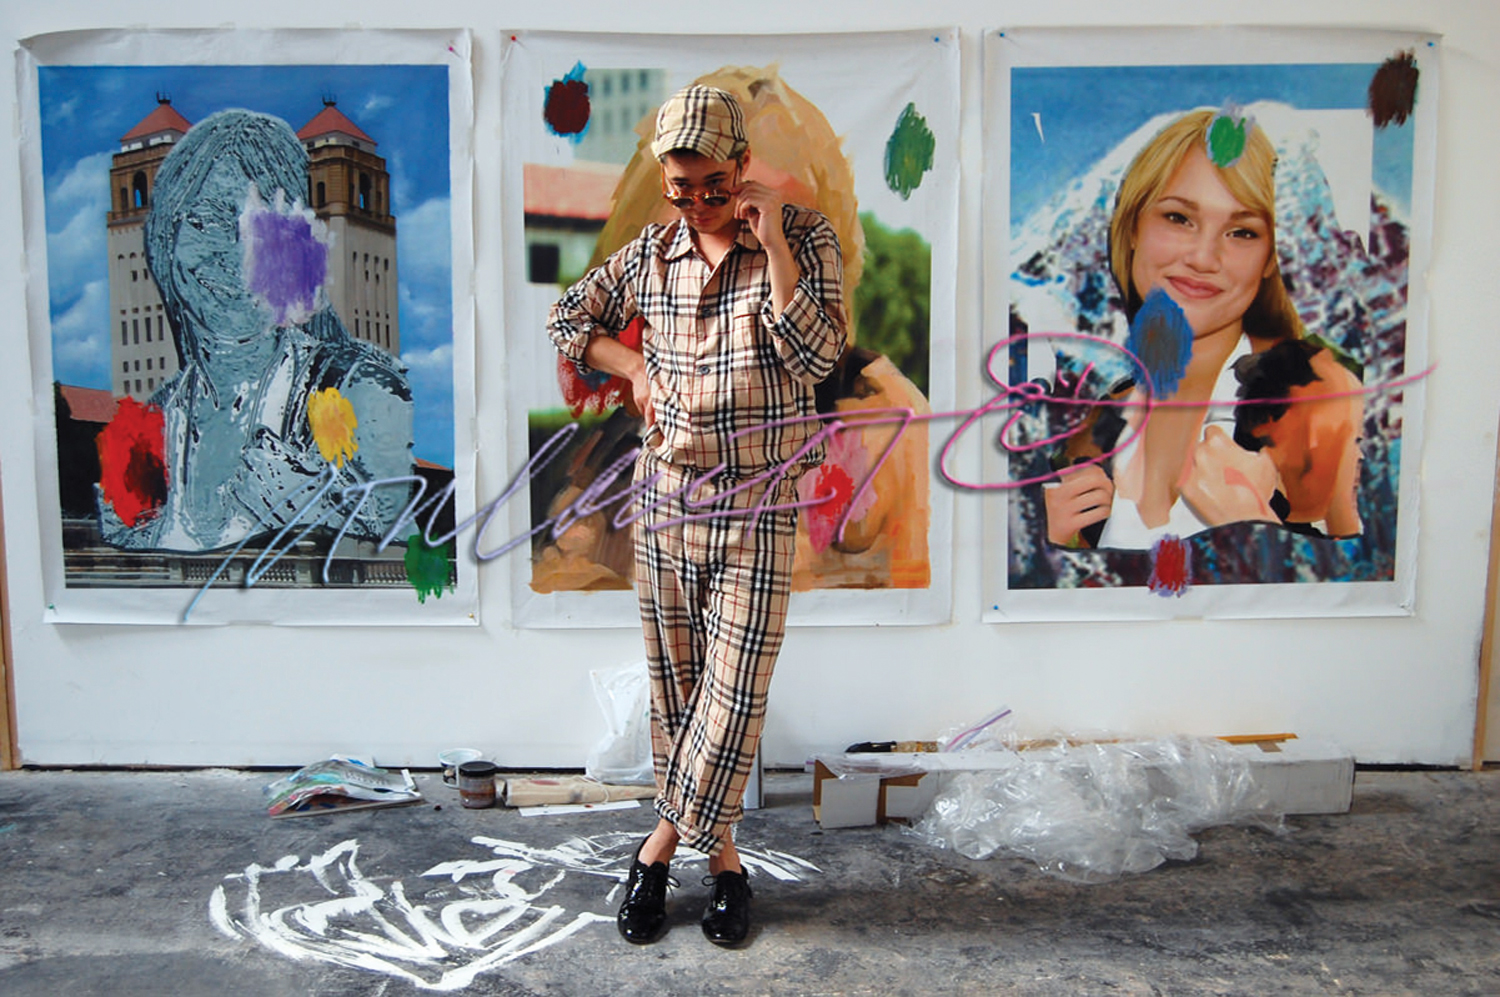 Parker Ito posing in his studio, in front of The Most Infamous Girl in the History of the Internet / Attractive Student / Parked Domain Girl, 2010 - 2013. Image courtesy of Artpulse Magazine.